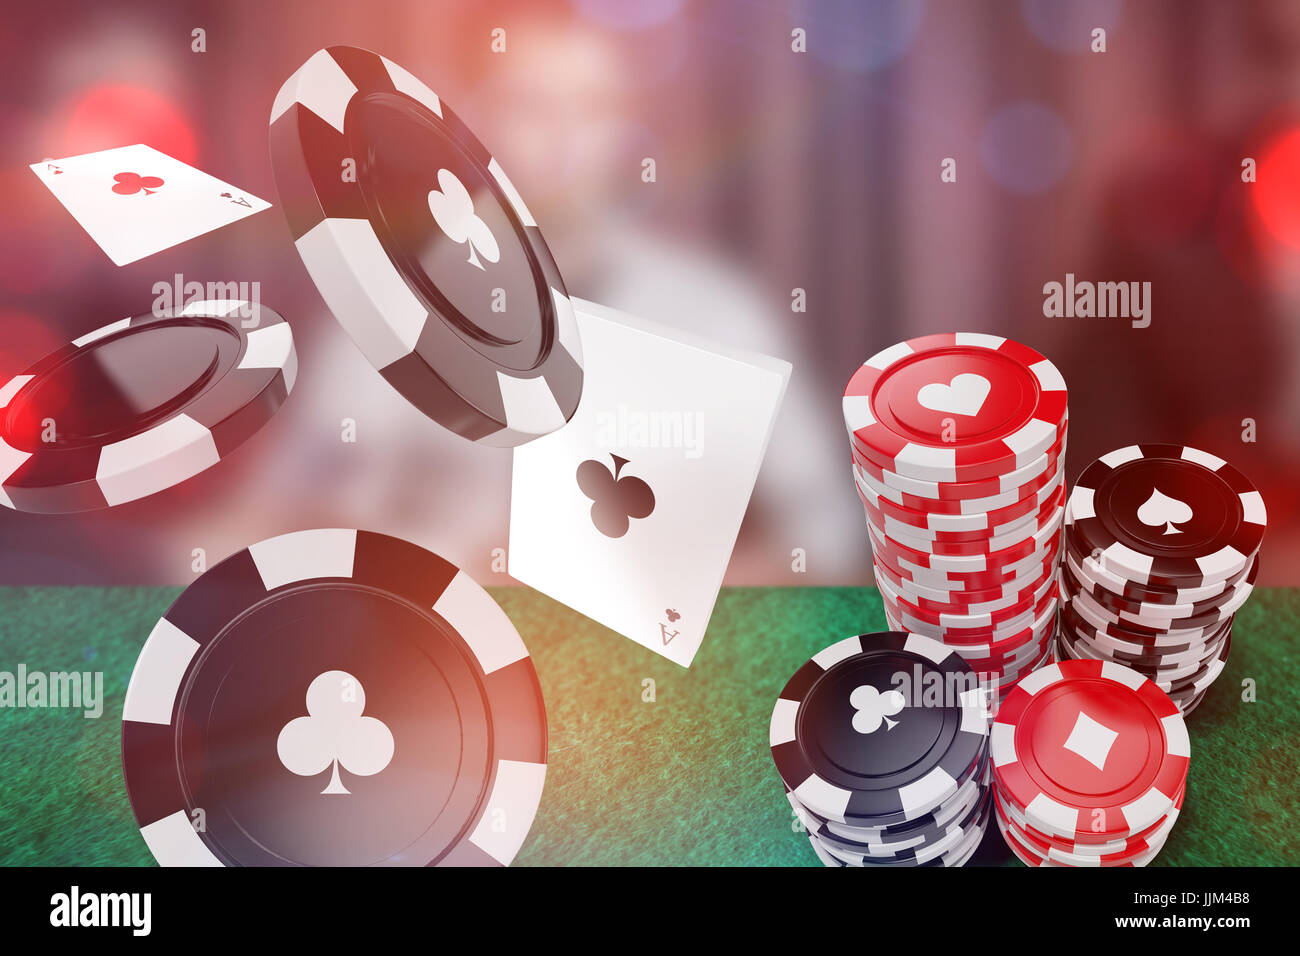 Immagine composita di immagine 3d di black casino token con simbolo del club Foto Stock